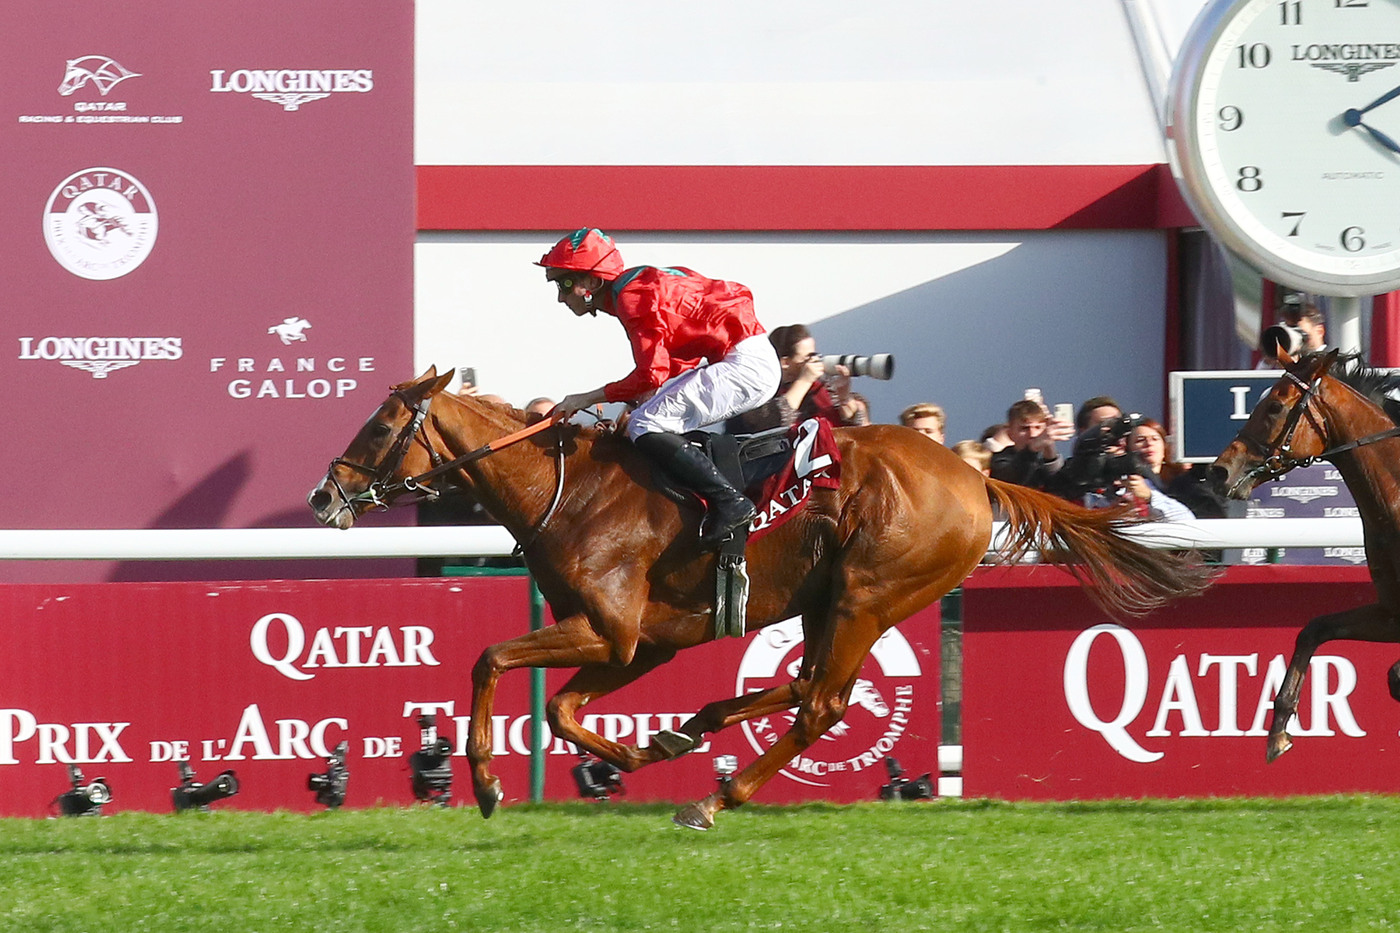 Longines Flat Racing Event: Waldgeist wins the 98th edition of the Qatar Prix de l'Arc de Triomphe 2